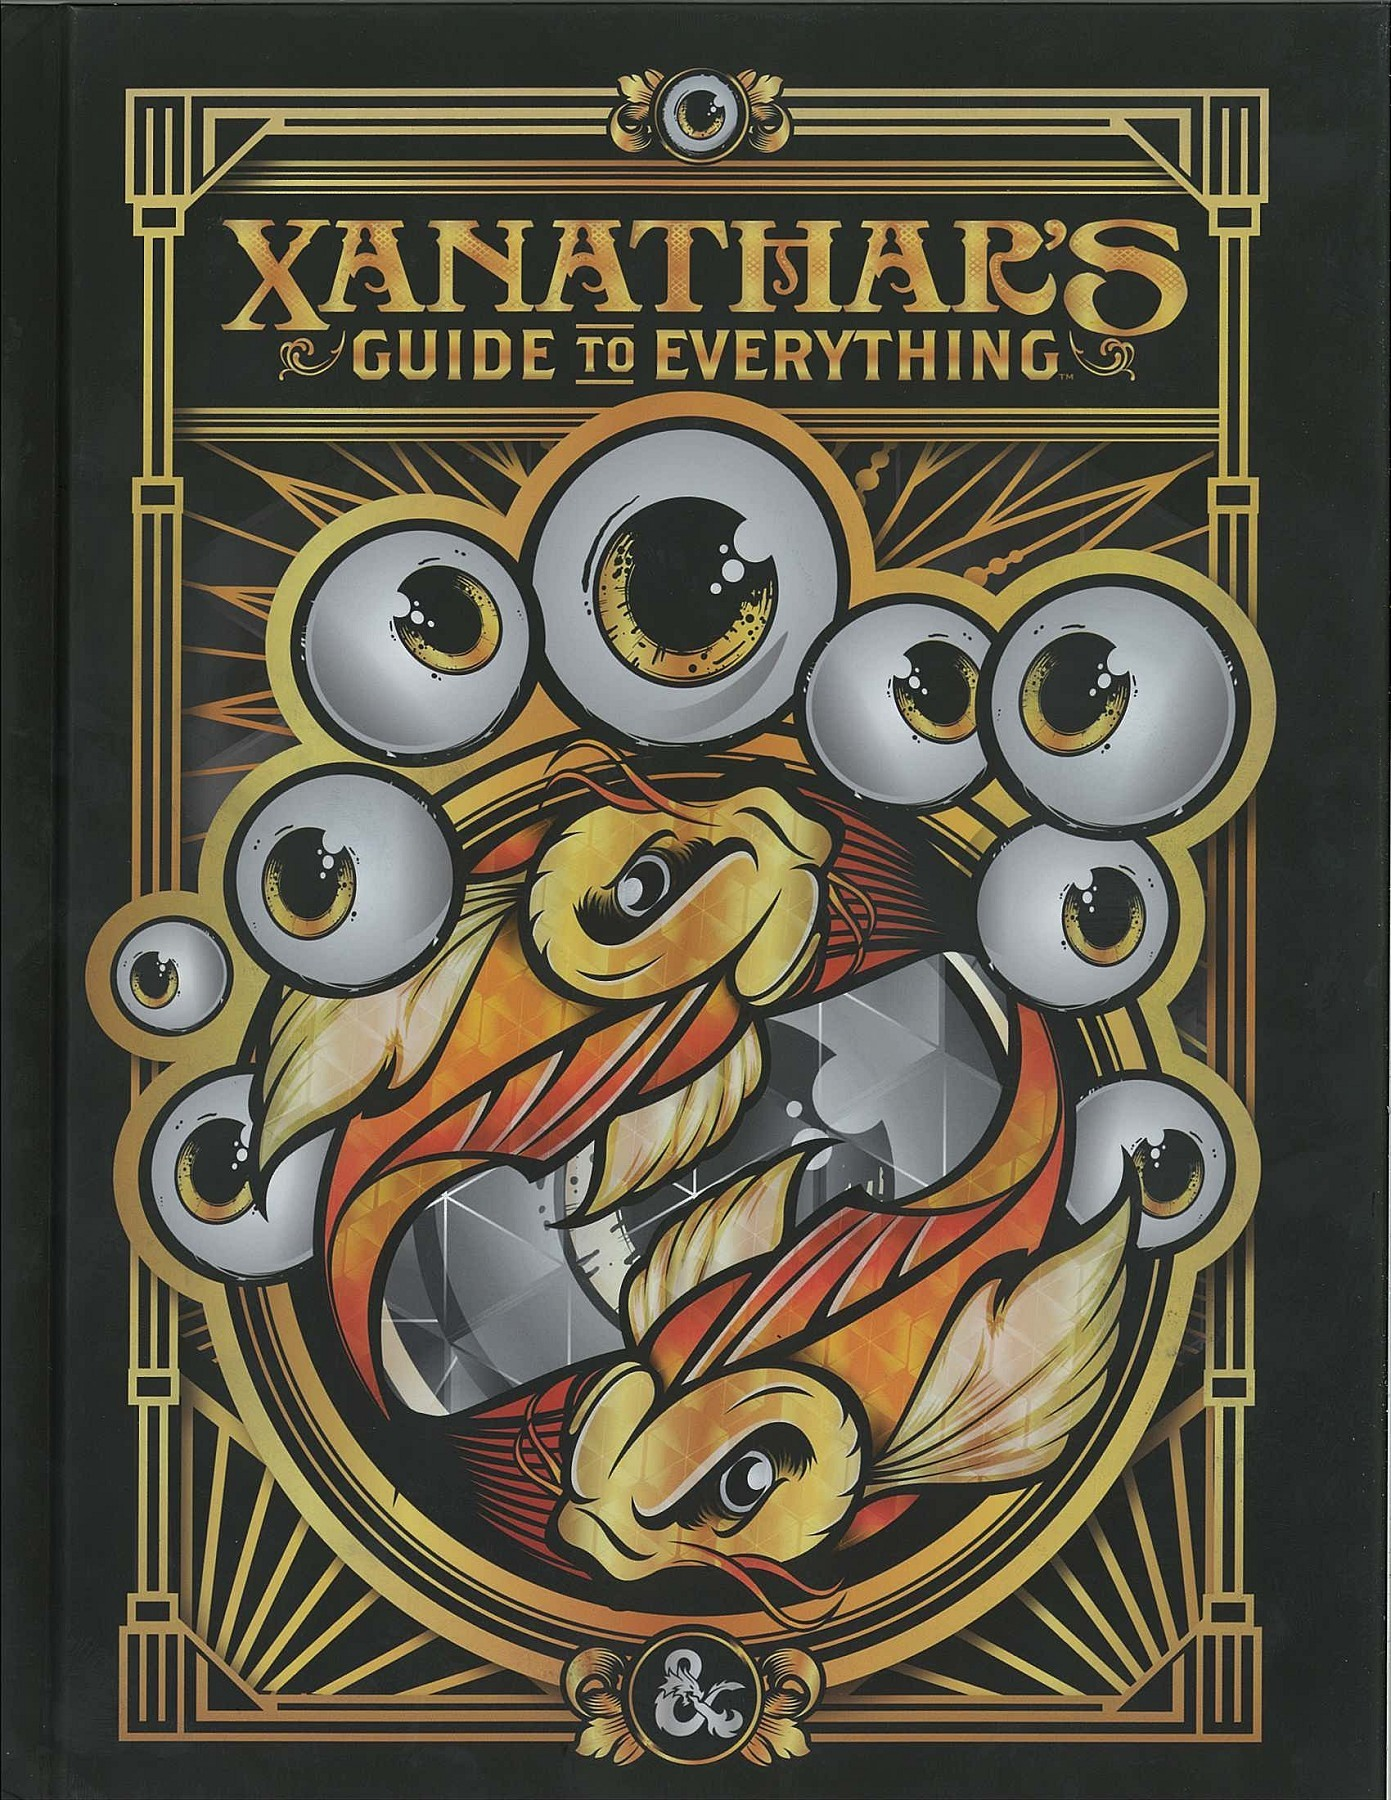 Xanathar's Guide to Everything pdf free download